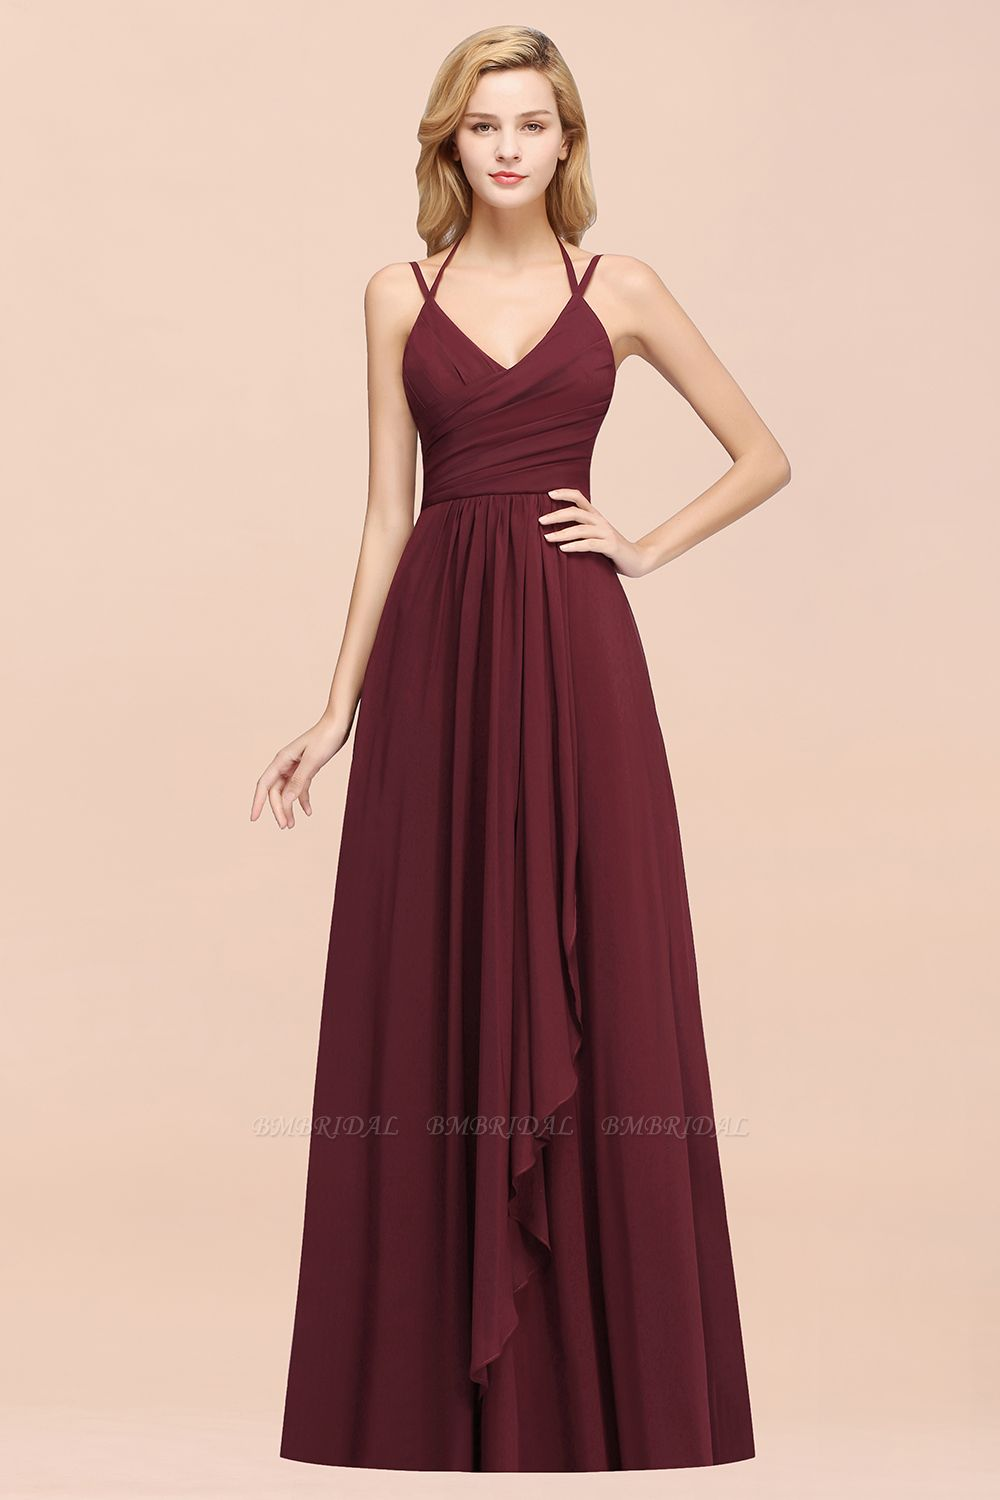 BMbridal Affordable Chiffon Burgundy Bridesmaid Dress With Spaghetti Straps